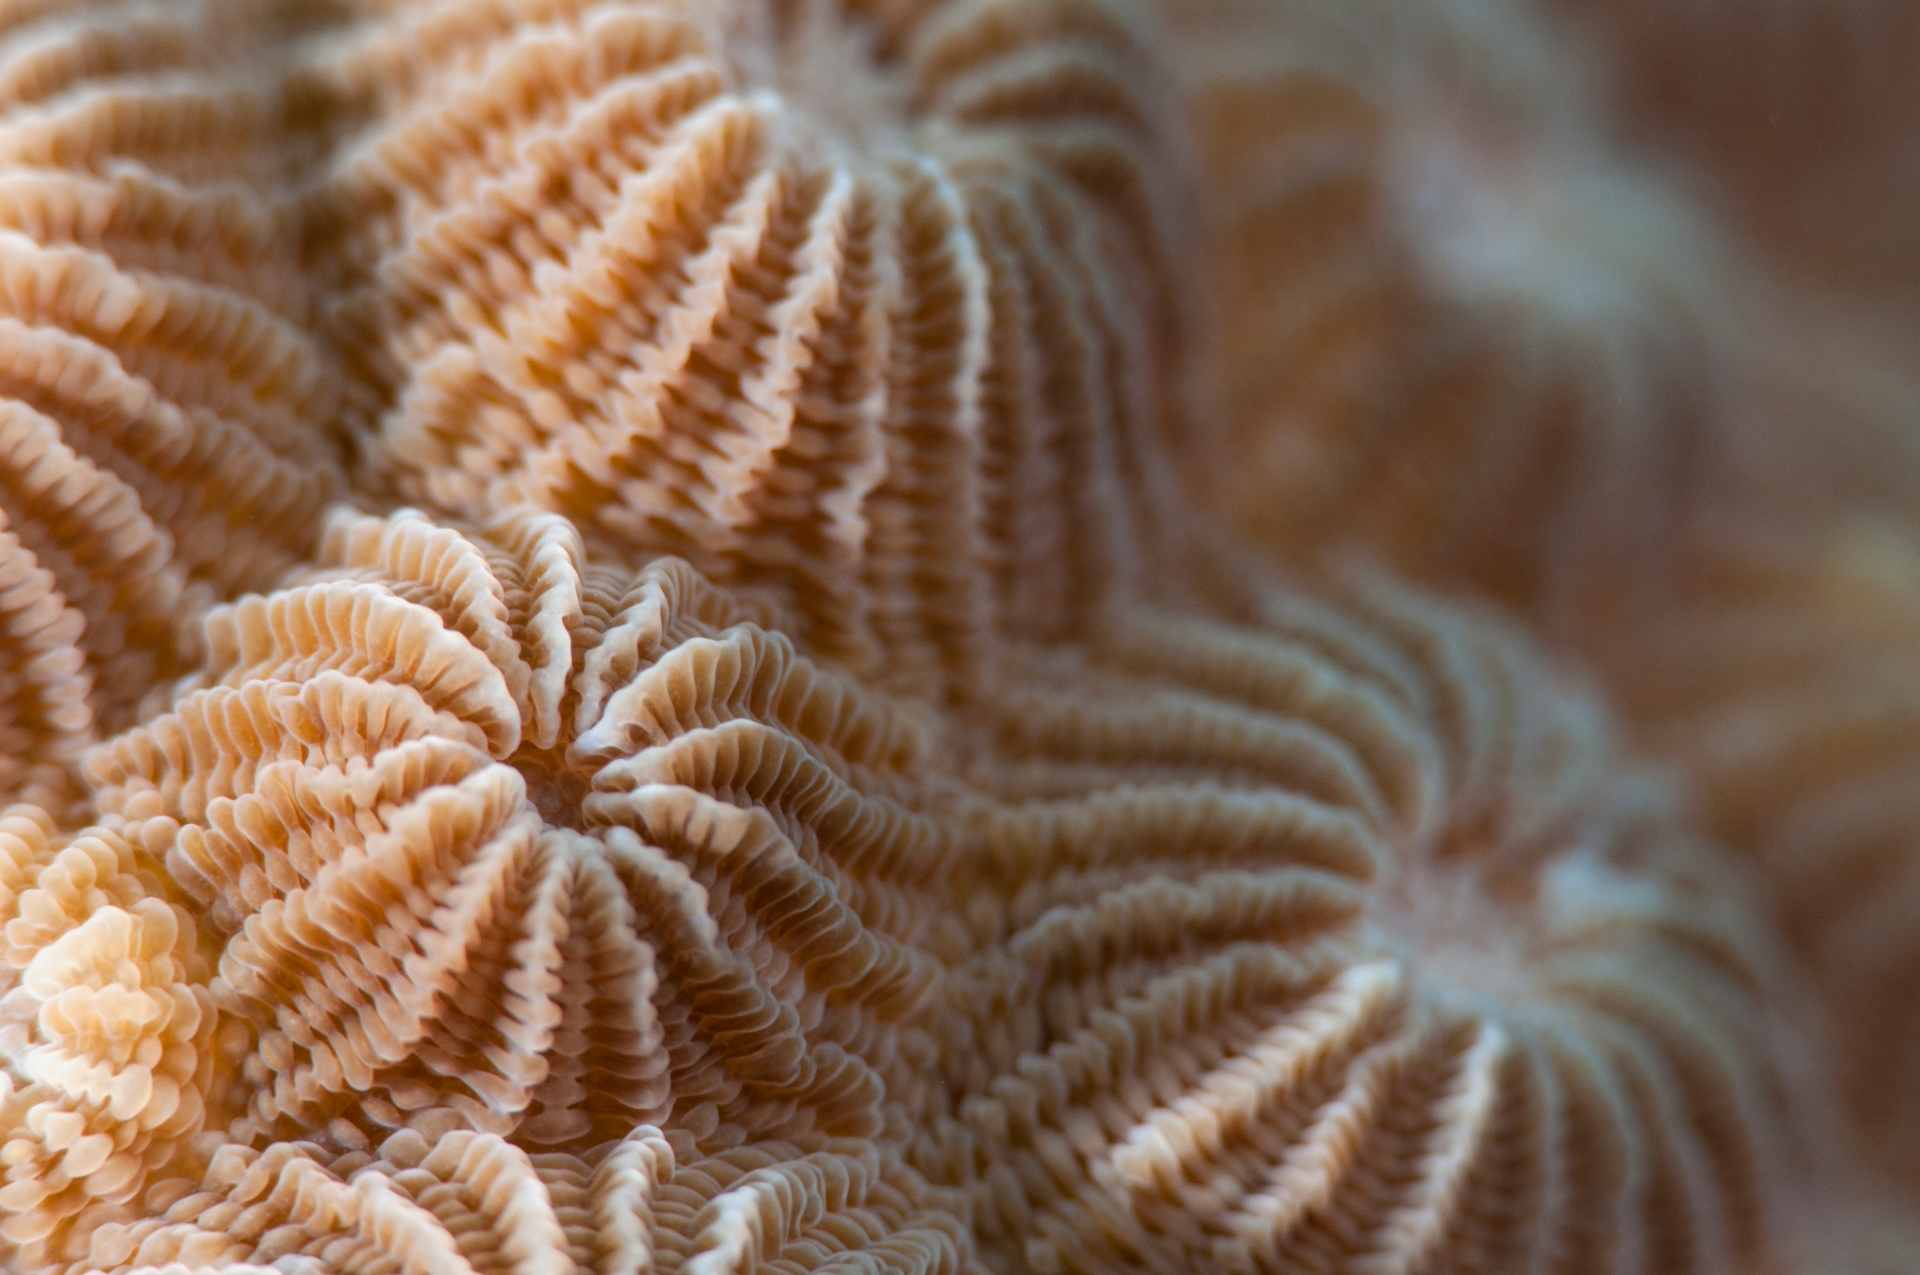 While appreciating the colours, patterns, and textures of corals, it's easy to forget that we are looking at wild animals and not a tapestry of exquisite art. Pictured here from top are Diplostrea sp., Pavona sp. and Fungia sp. Photos: Umeed Mistry